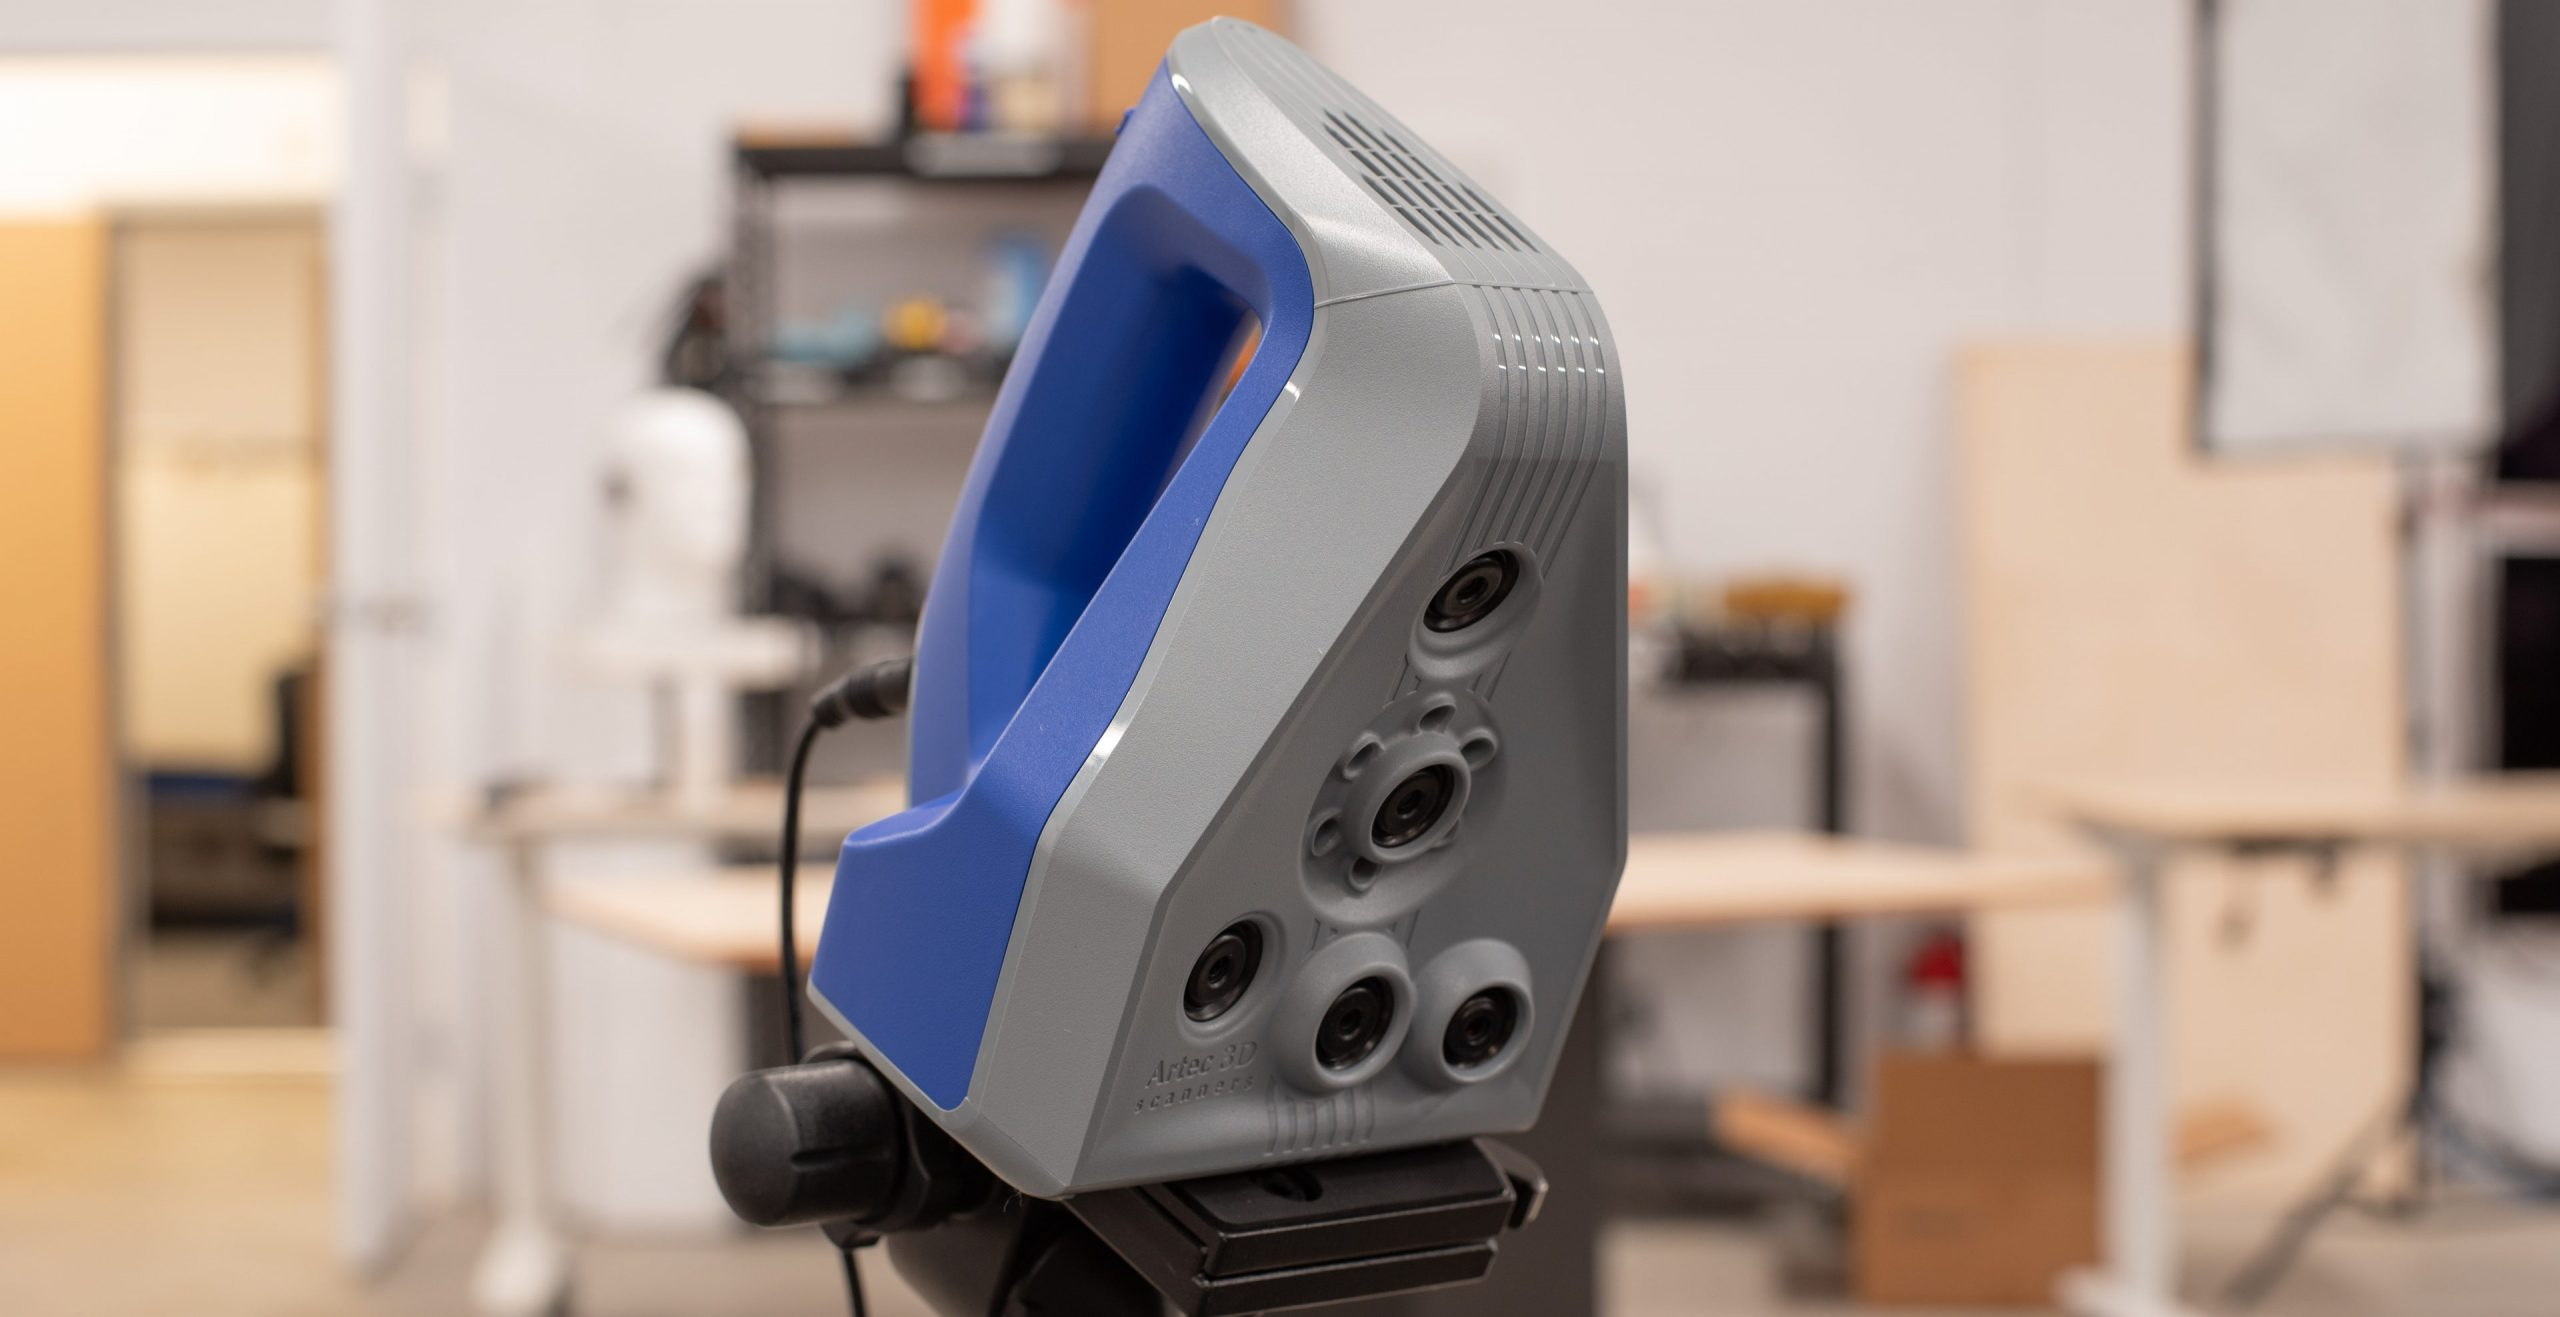 The Artec Space Spider, a portable 3D scanner